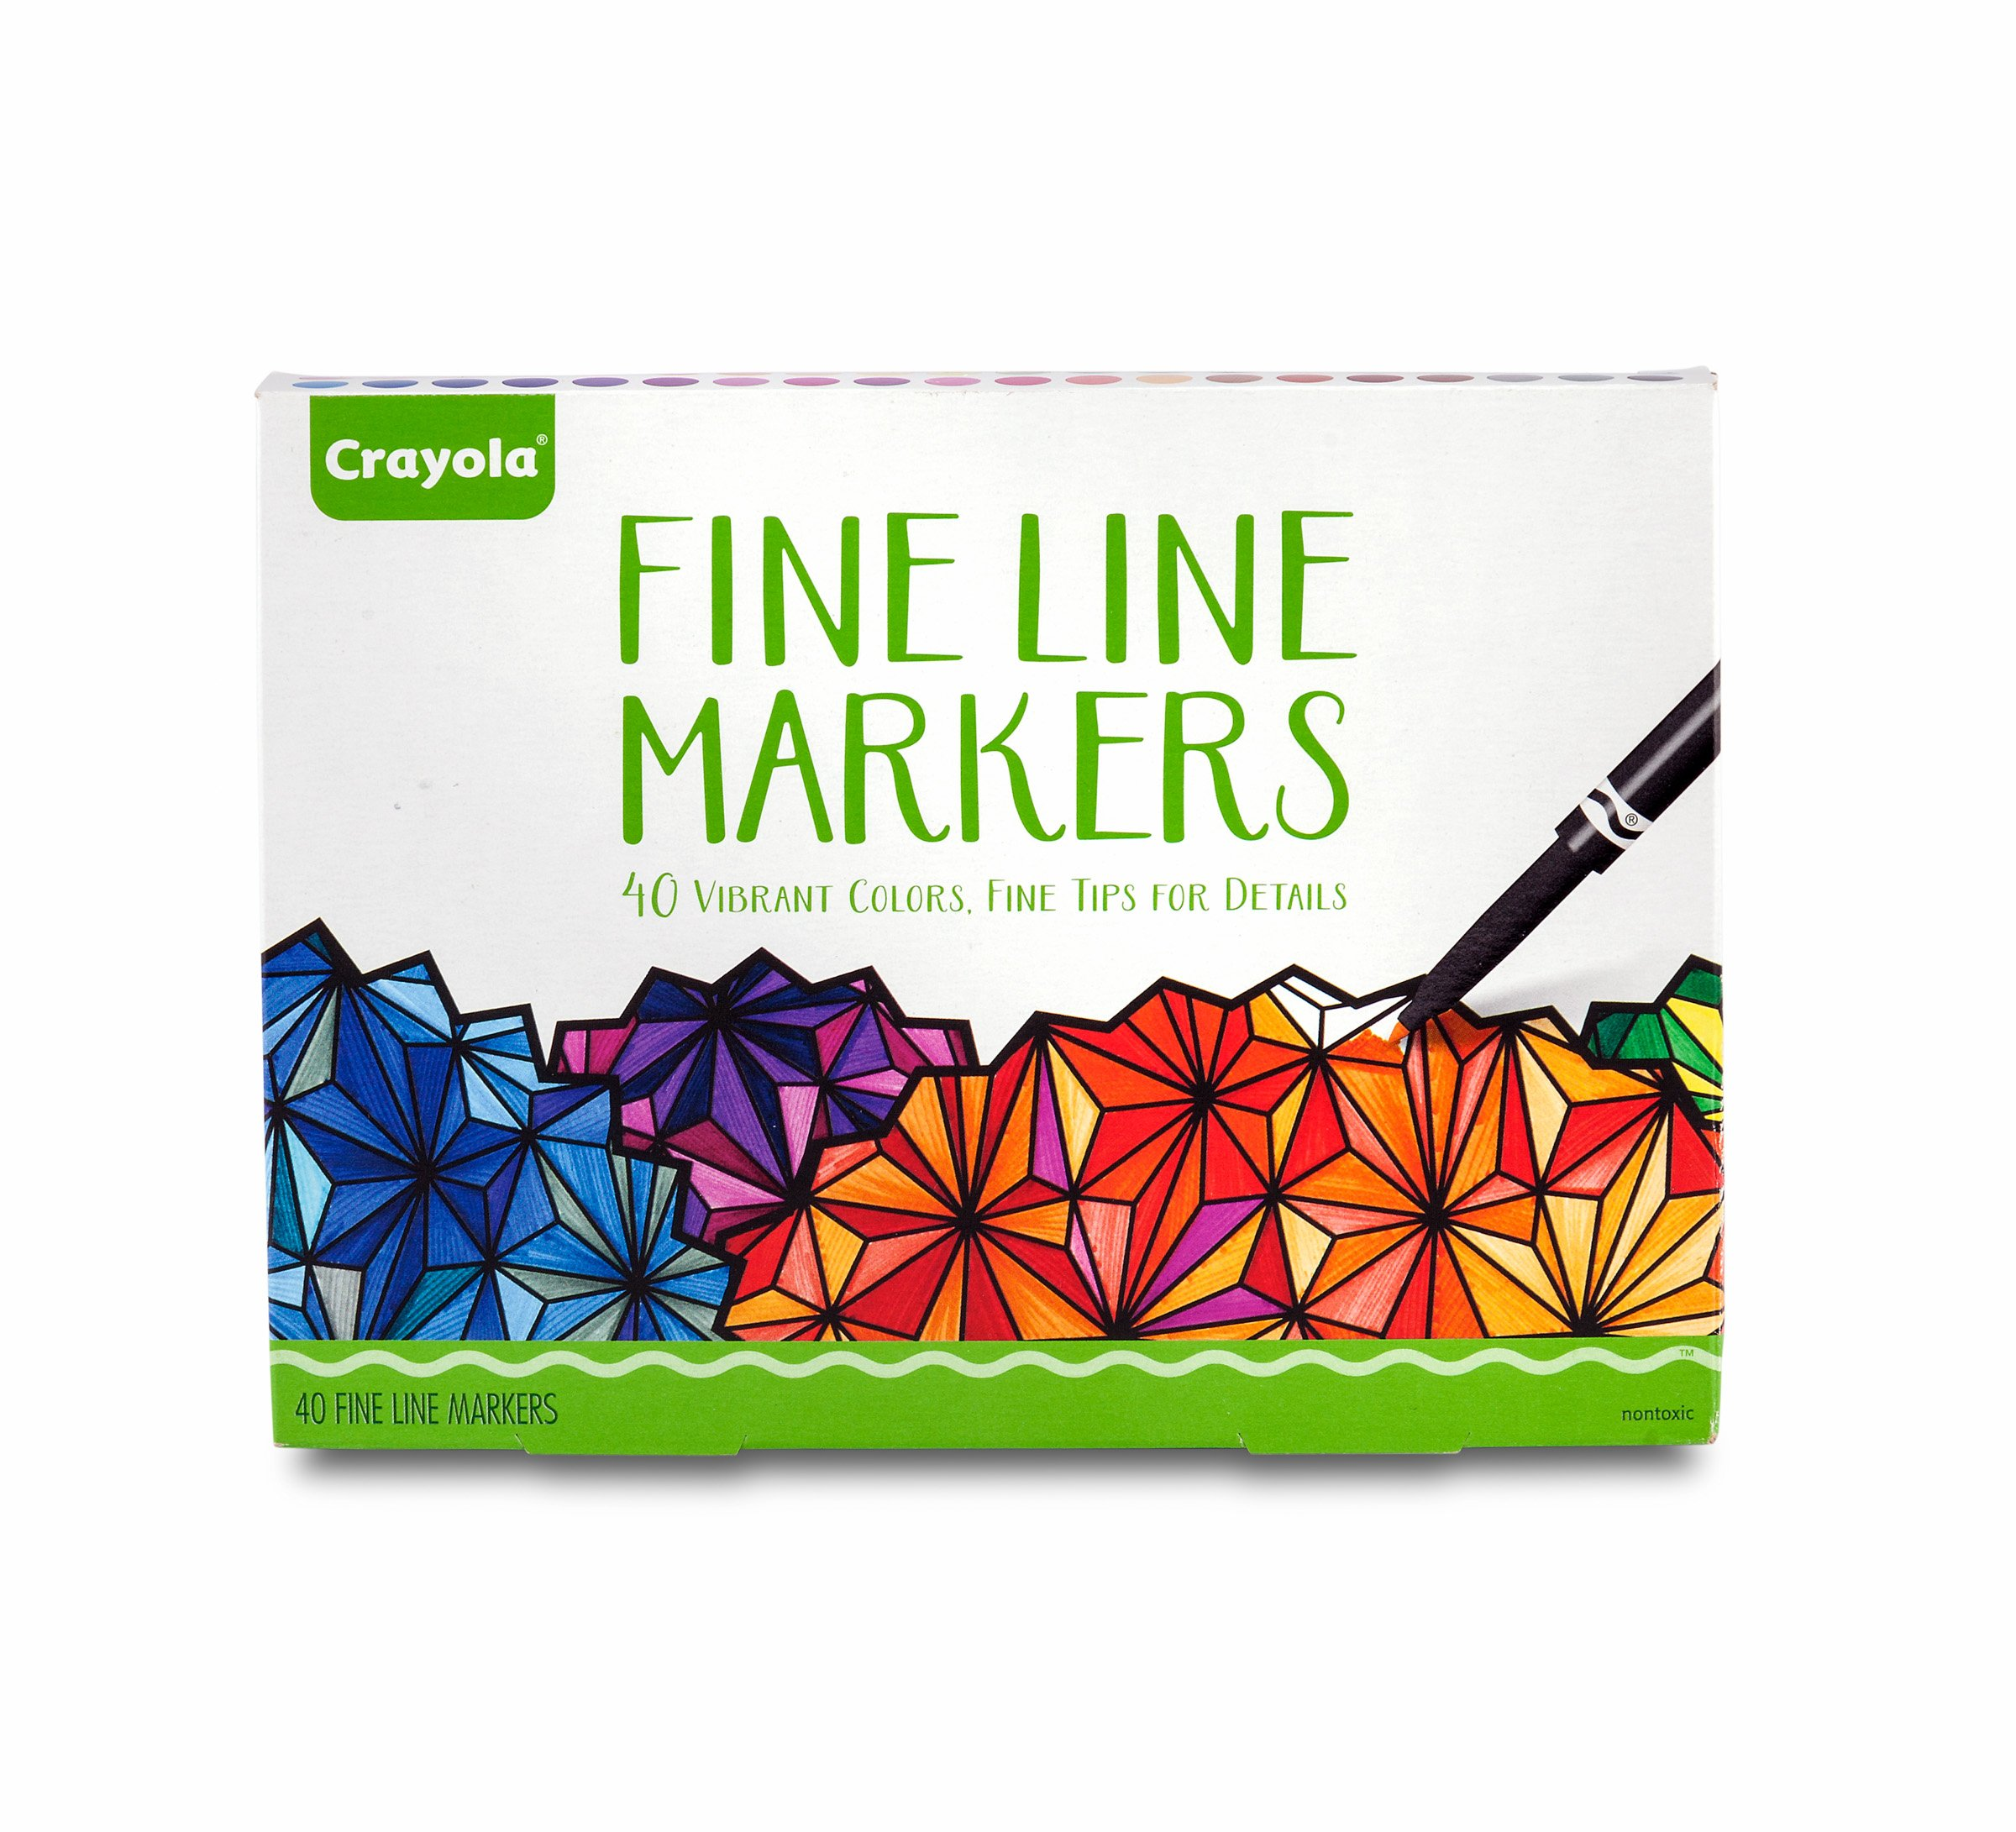 Crayola Fine Line Markers, 40 Count, Assorted Colors, Adult Coloring by Crayola